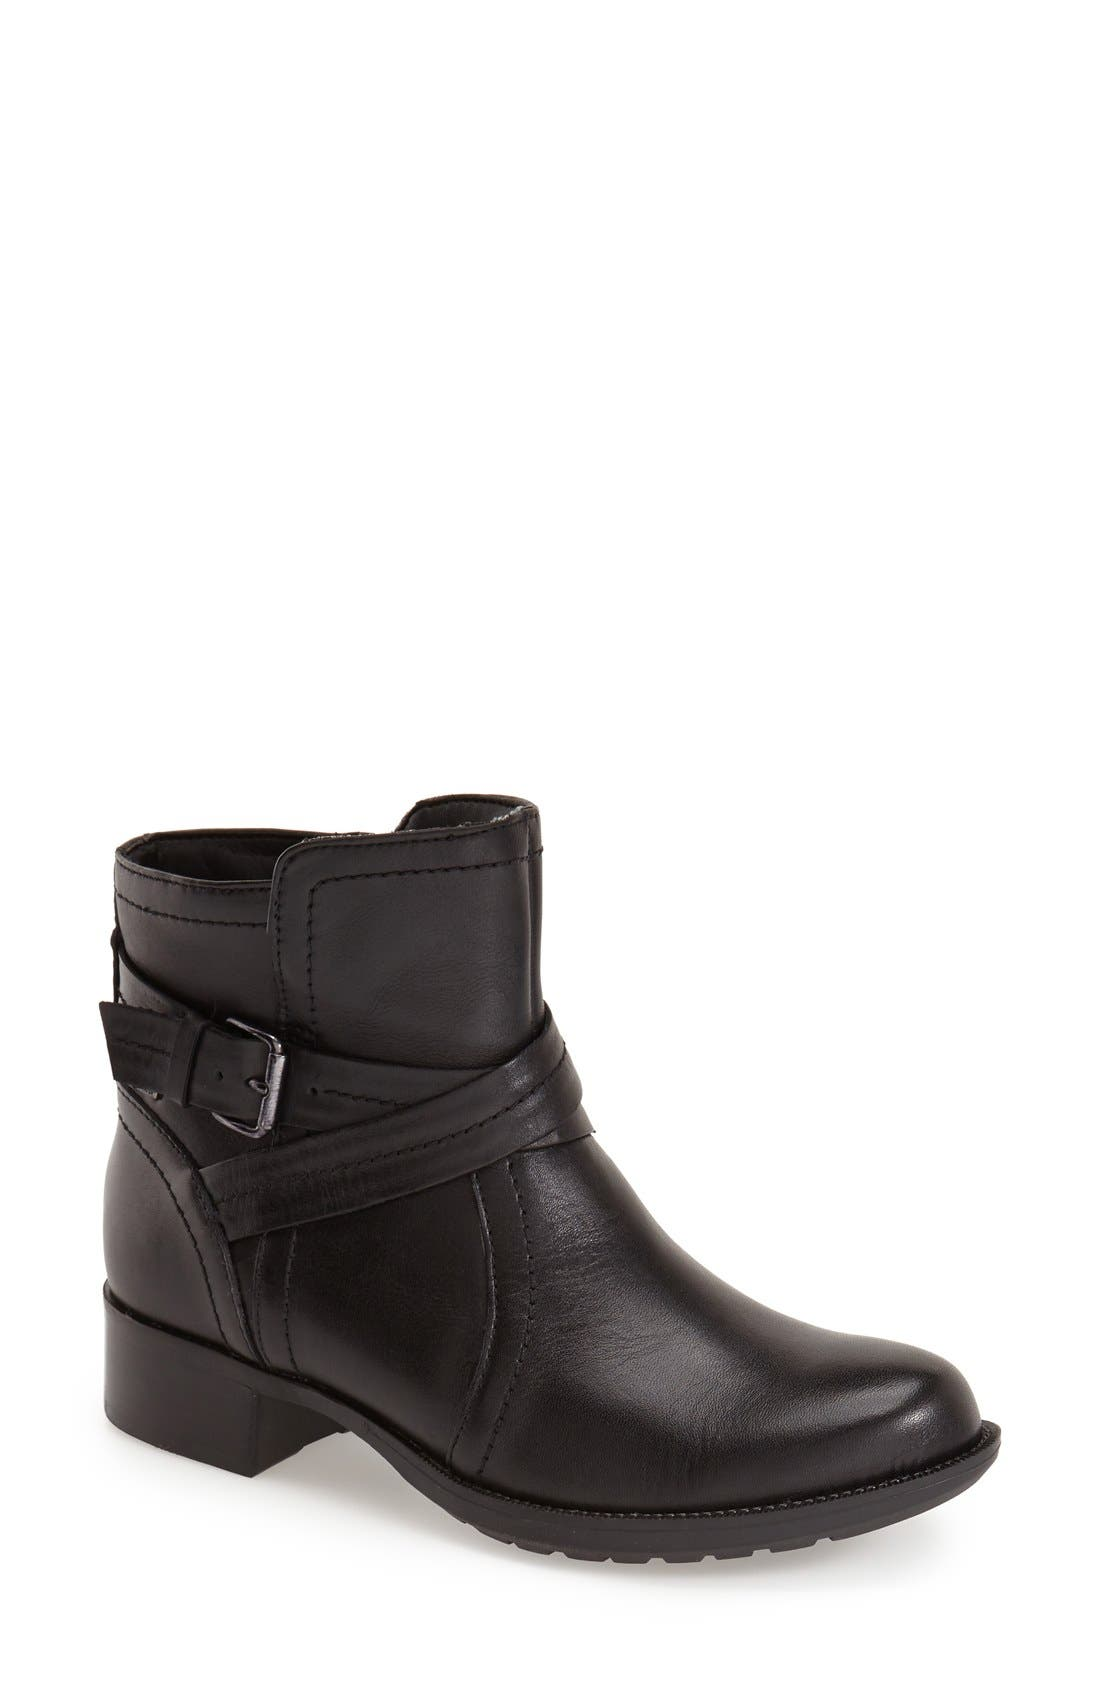 Main Image - Rockport Cobb Hill 'Caroline' Waterproof Boot (Women)